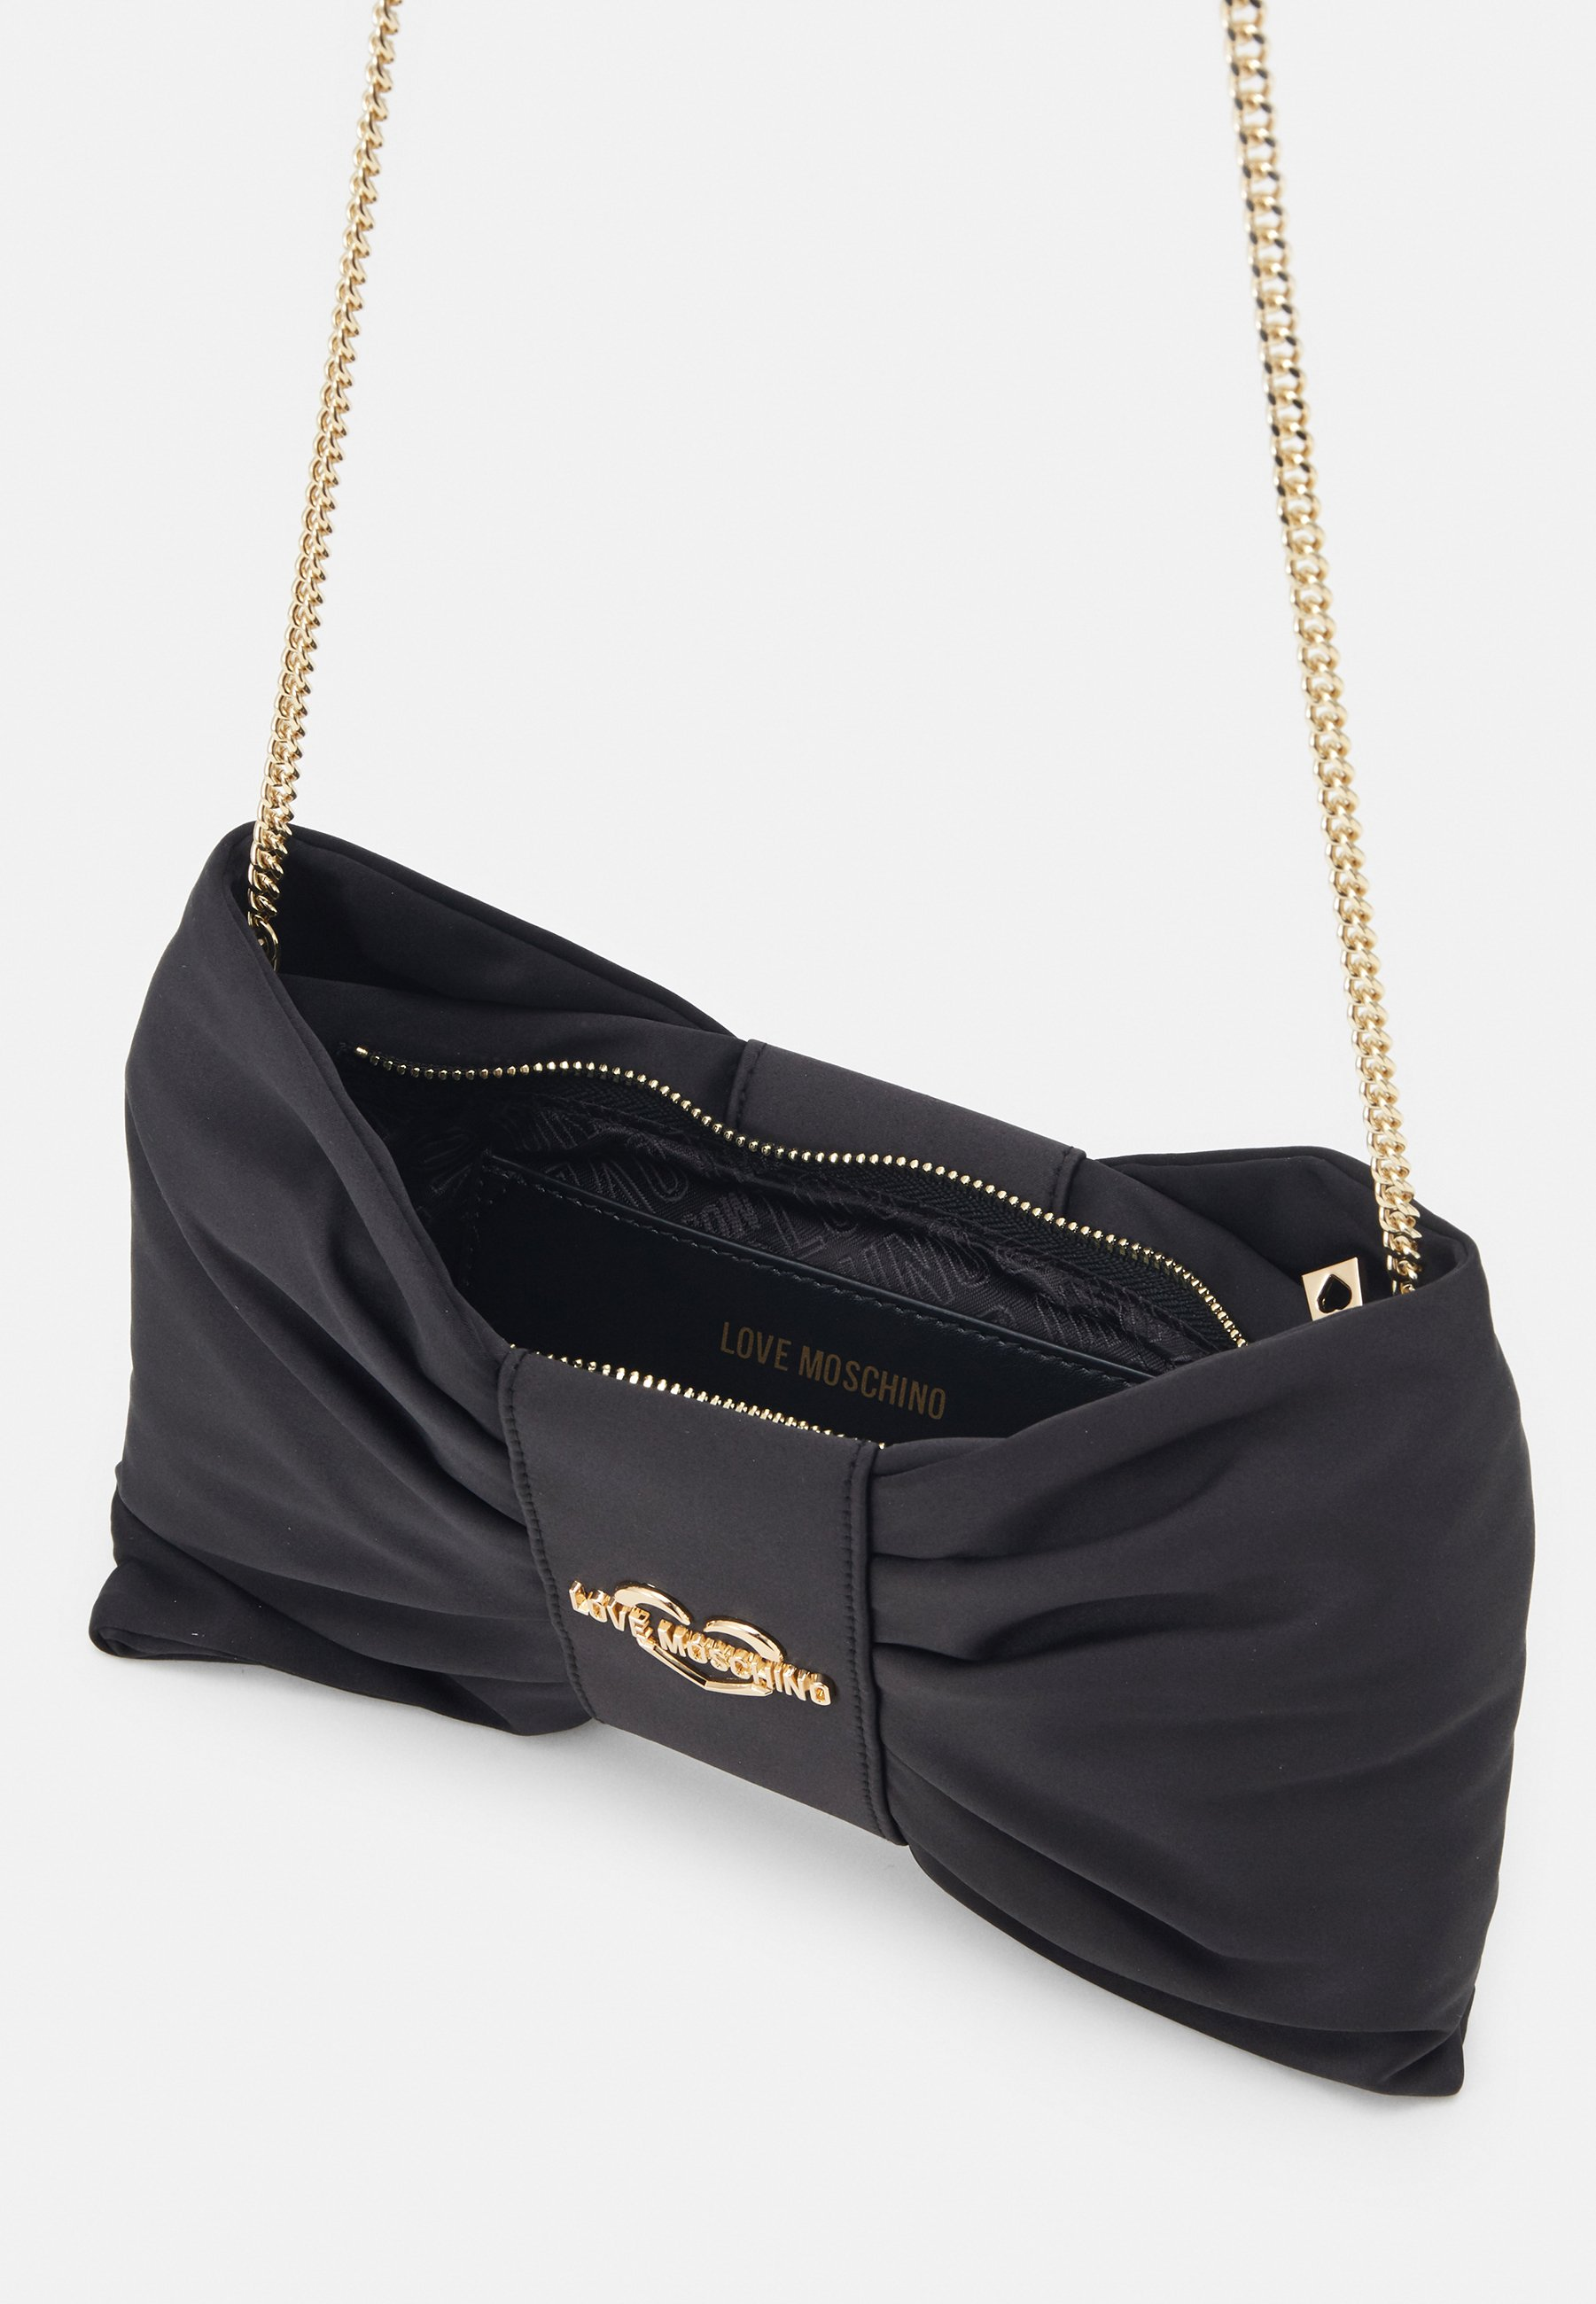 Clearance Outlet Love Moschino BORSA CHAMPAGNE - Across body bag - black | women's accessories 2020 KfZZq